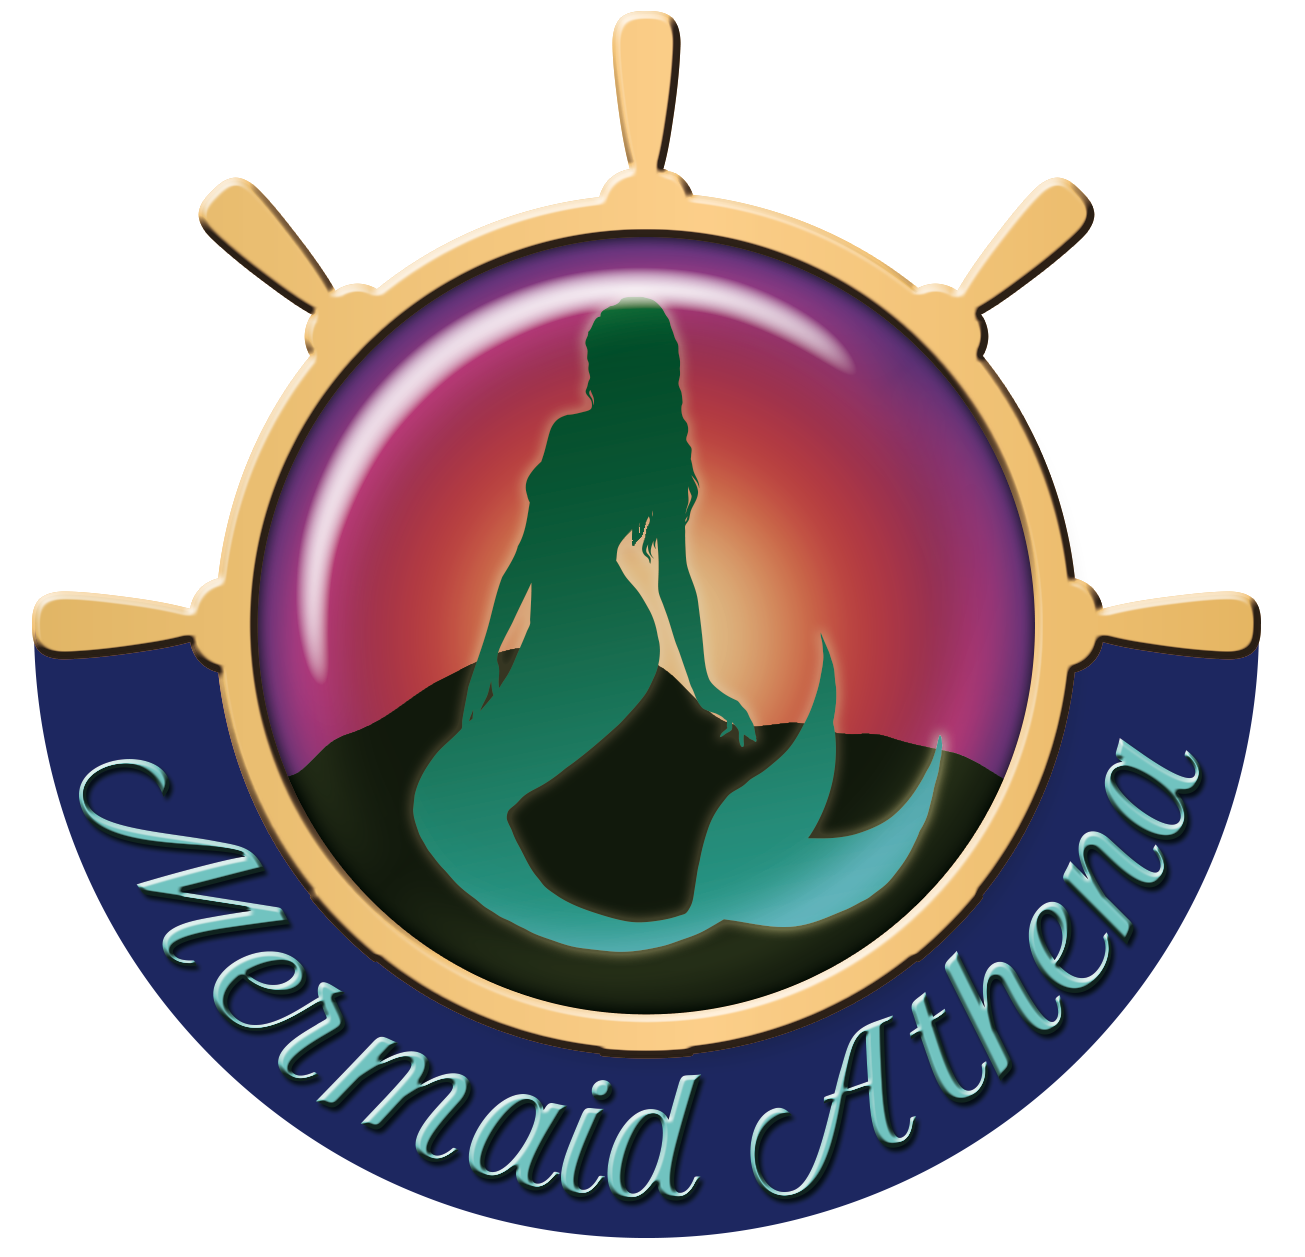 Contract clipart term condition. Terms conditions mermaid athena